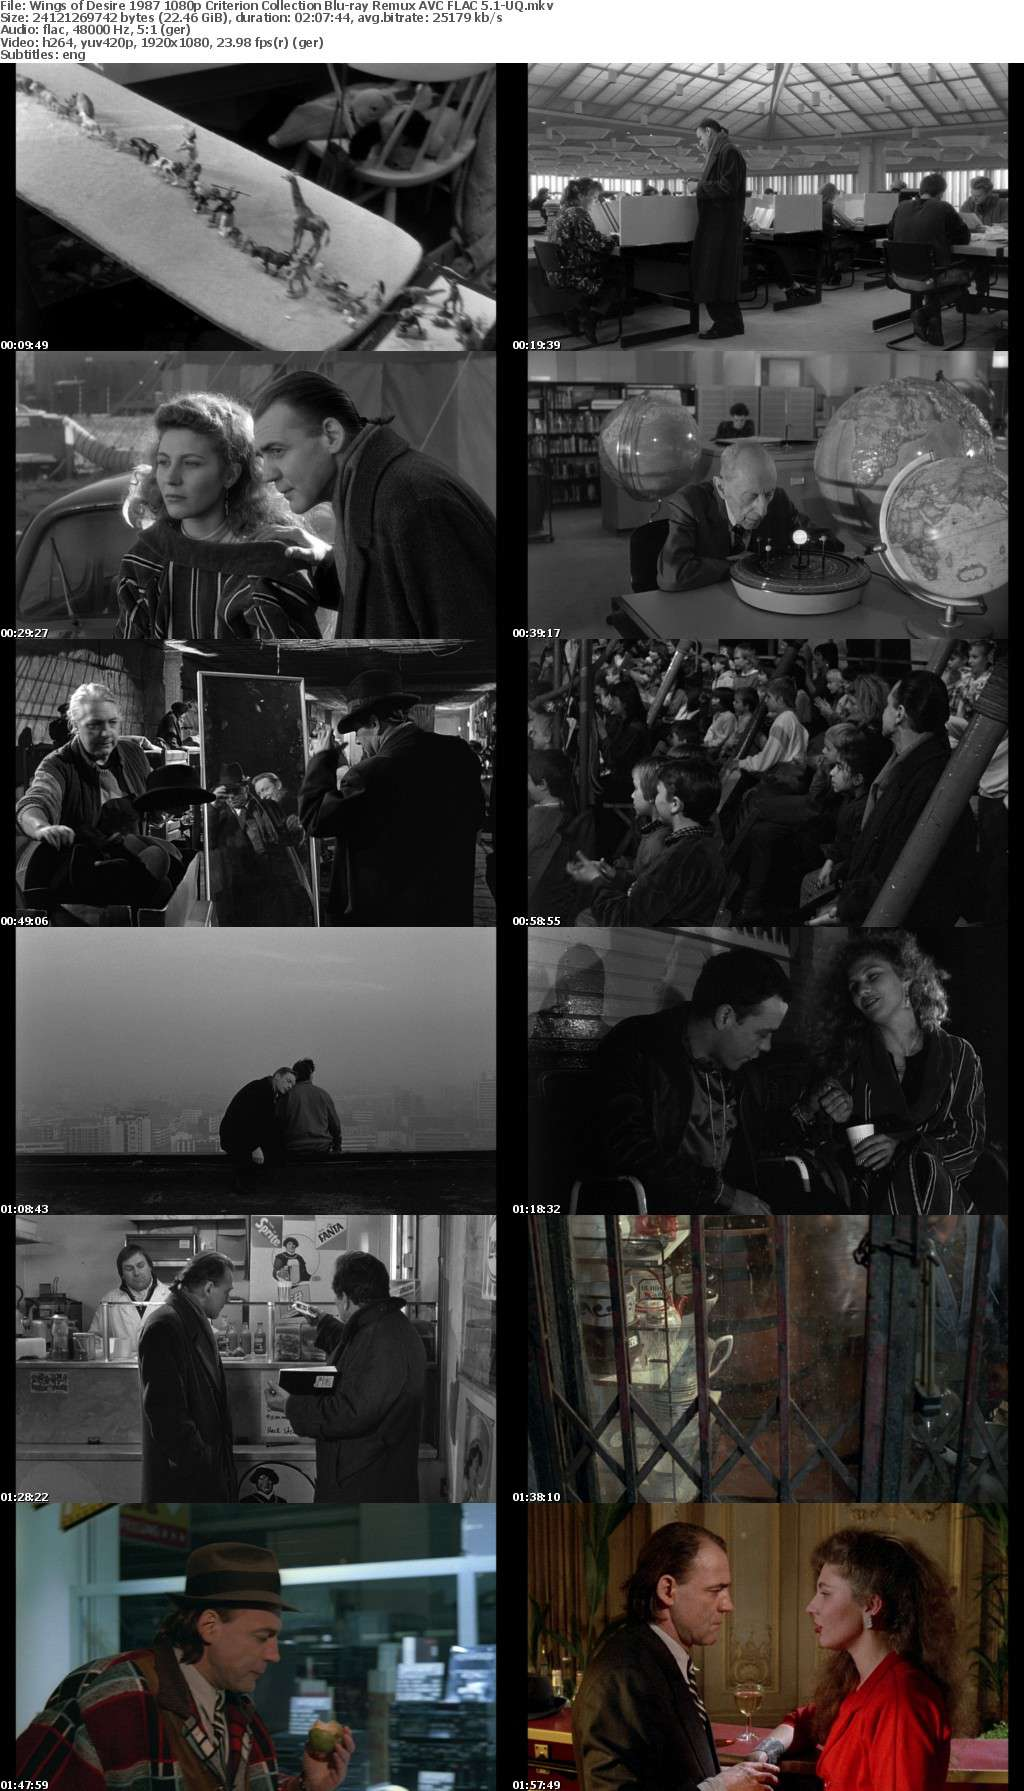 [German] Wings of Desire 1987 Criterion Collection 1080p Bluray Remux AVC FLAC 5 1-UQ